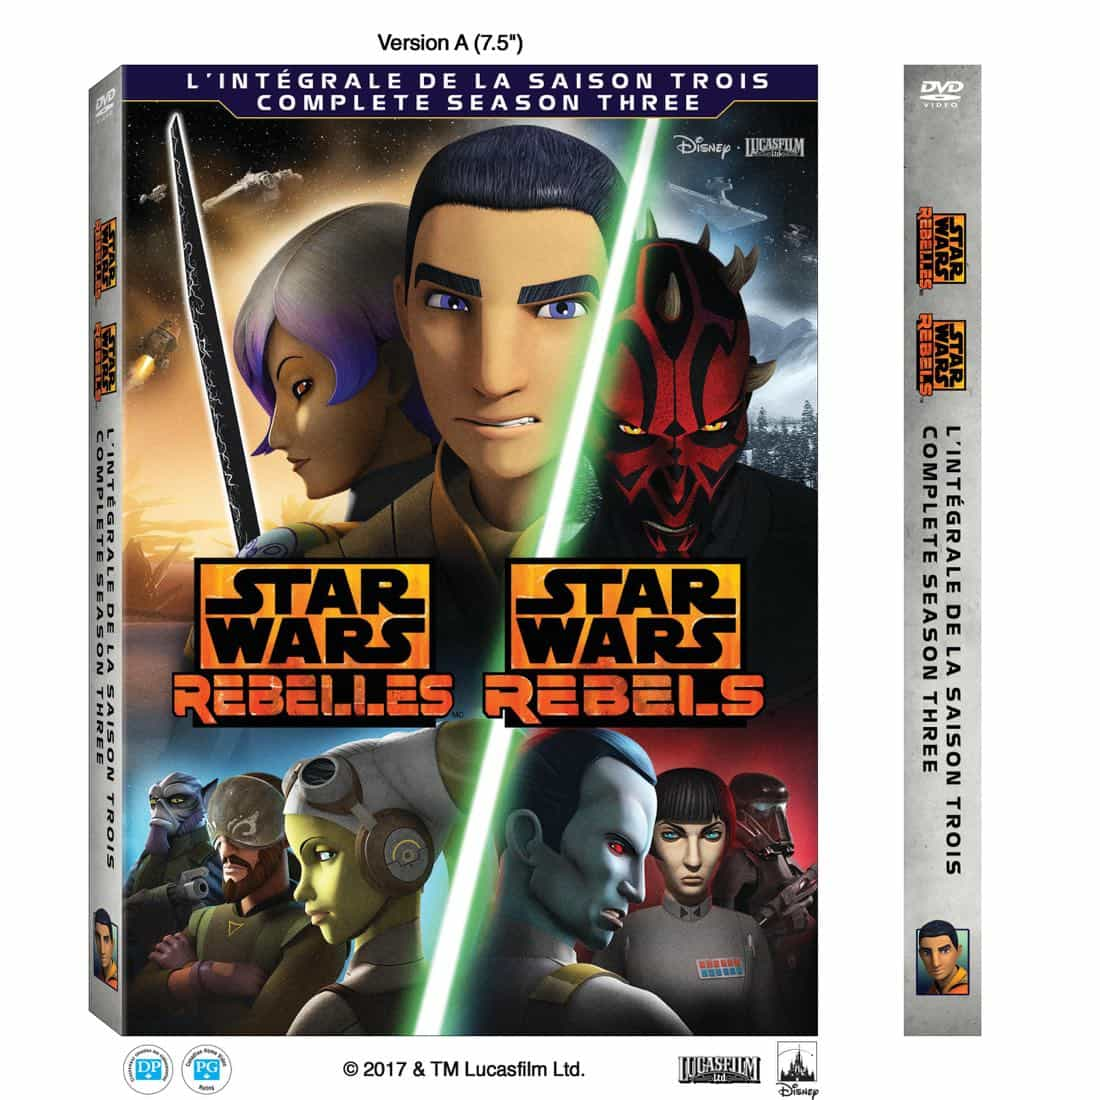 Star Wars Rebels Season 3 DVD